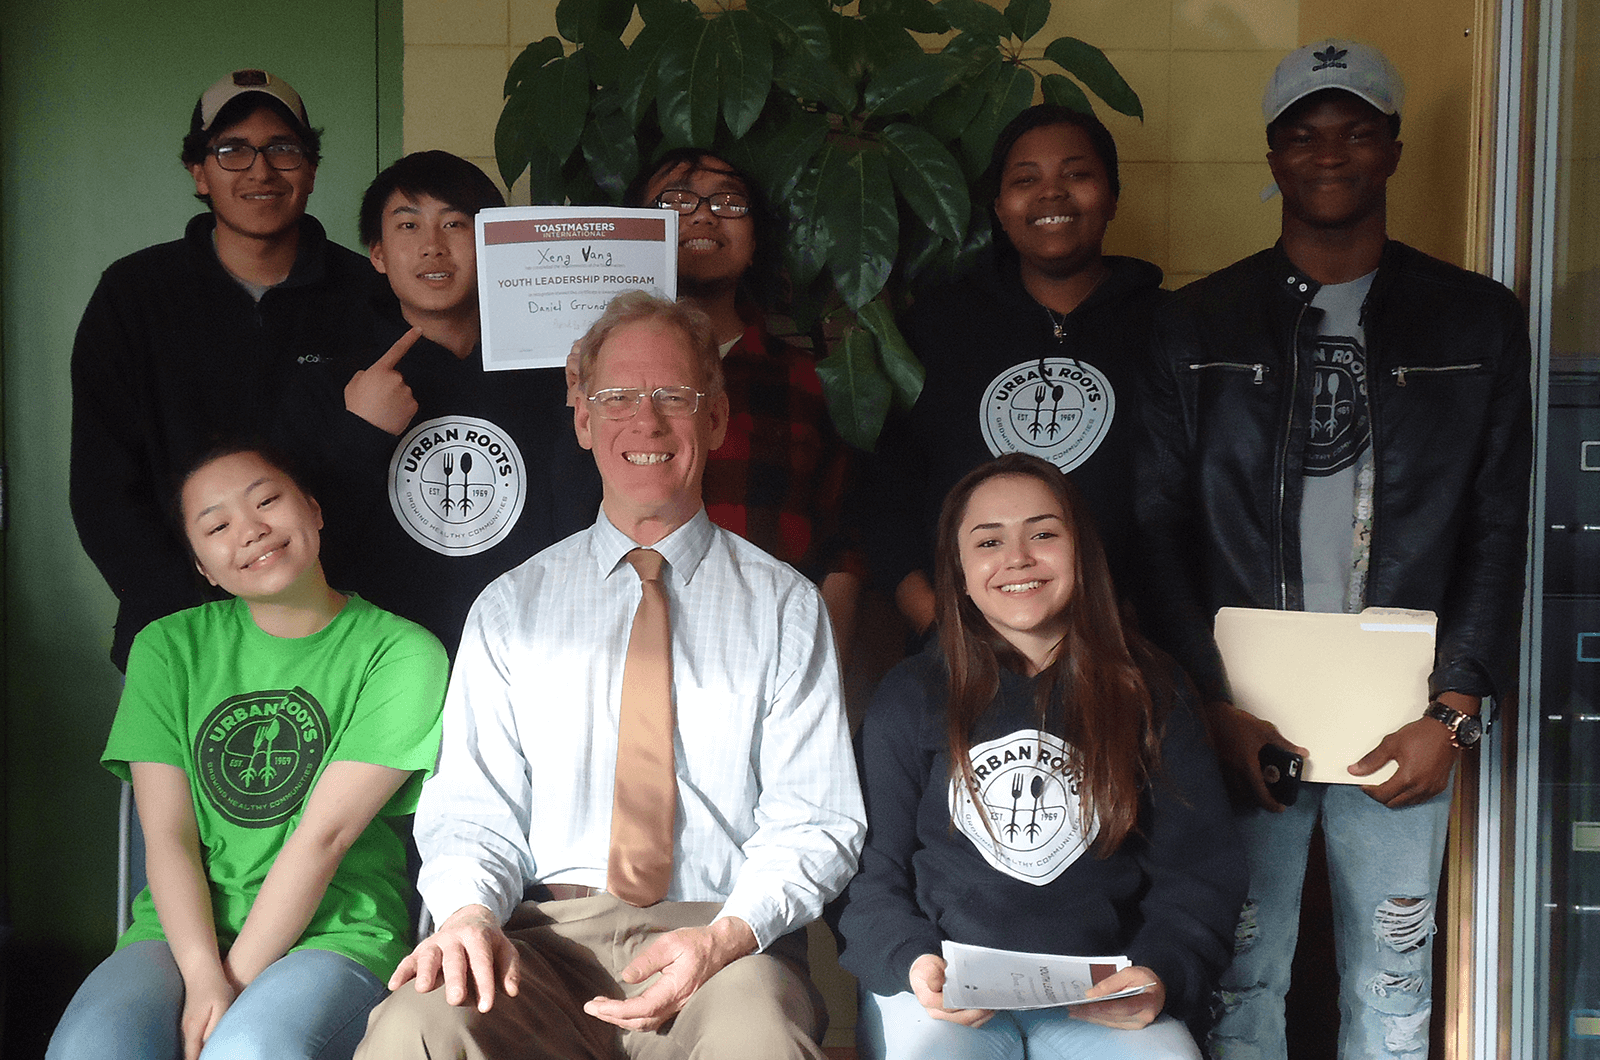 The MRPCV club led a Youth Leadership Program for young interns in Urban Roots, a youth leadership development nonprofit serving East St. Paul, Minnesota, United States.